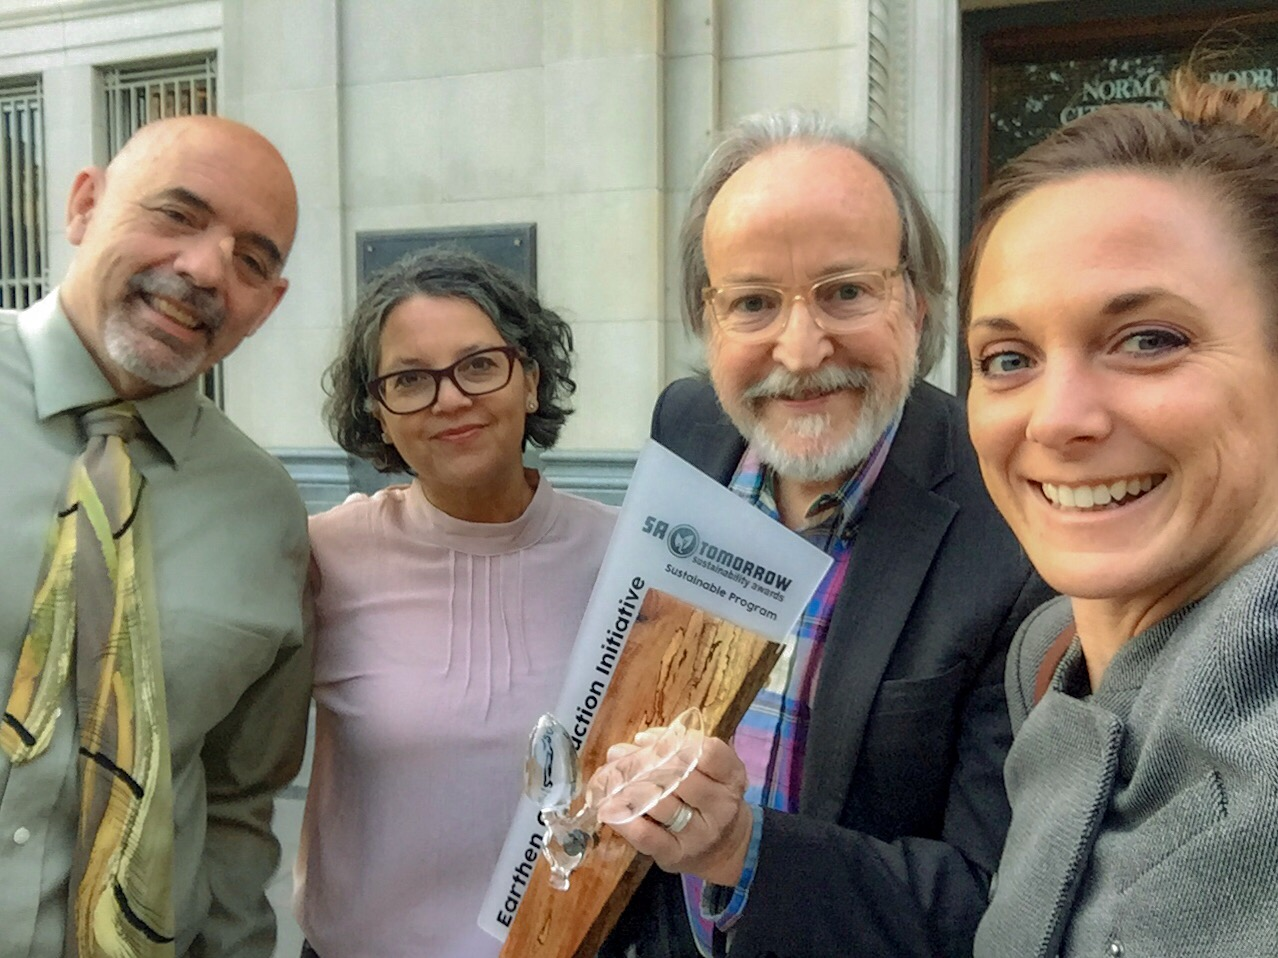 SA Tomorrow Sustainability Award with (left to right) Ron Evans (ECI board member); Celia Mendoza (ECI board member); Stephen Colley (ECI President); and Lauran Drown (ECI Vice President).